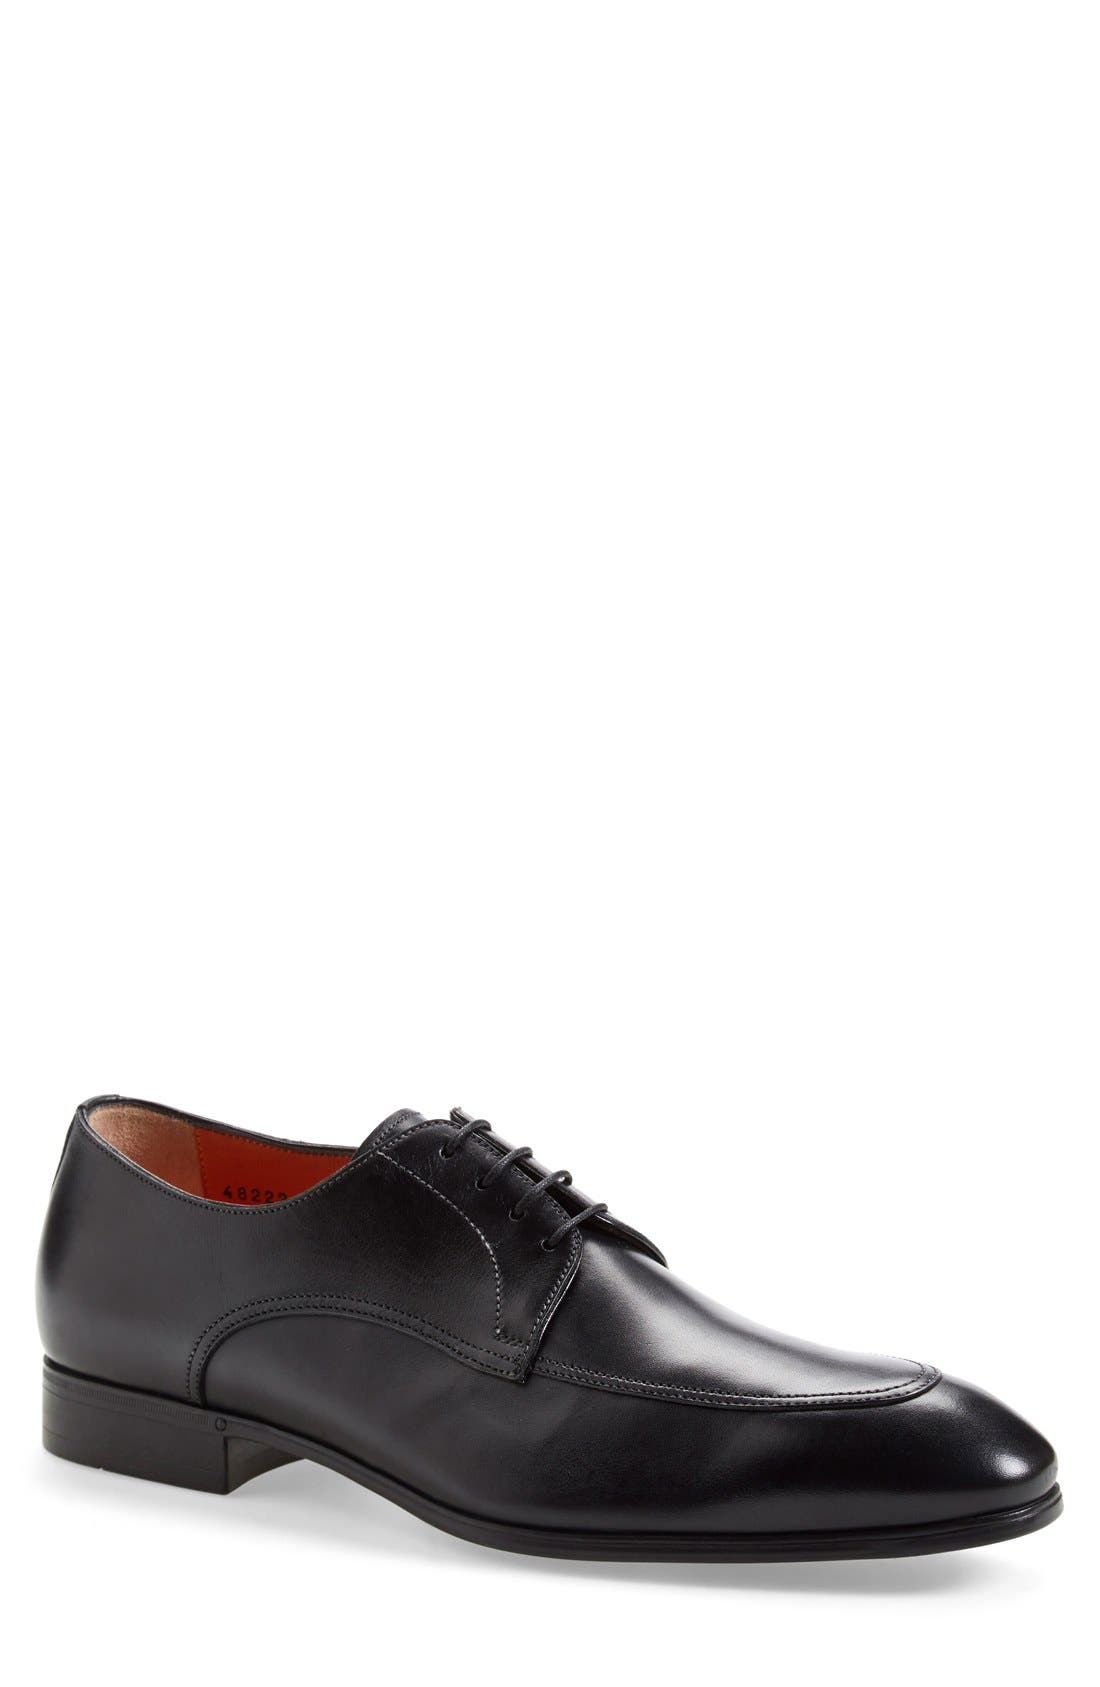 Alternate Image 1 Selected - Santoni 'Atwood' Apron Toe Derby (Men)